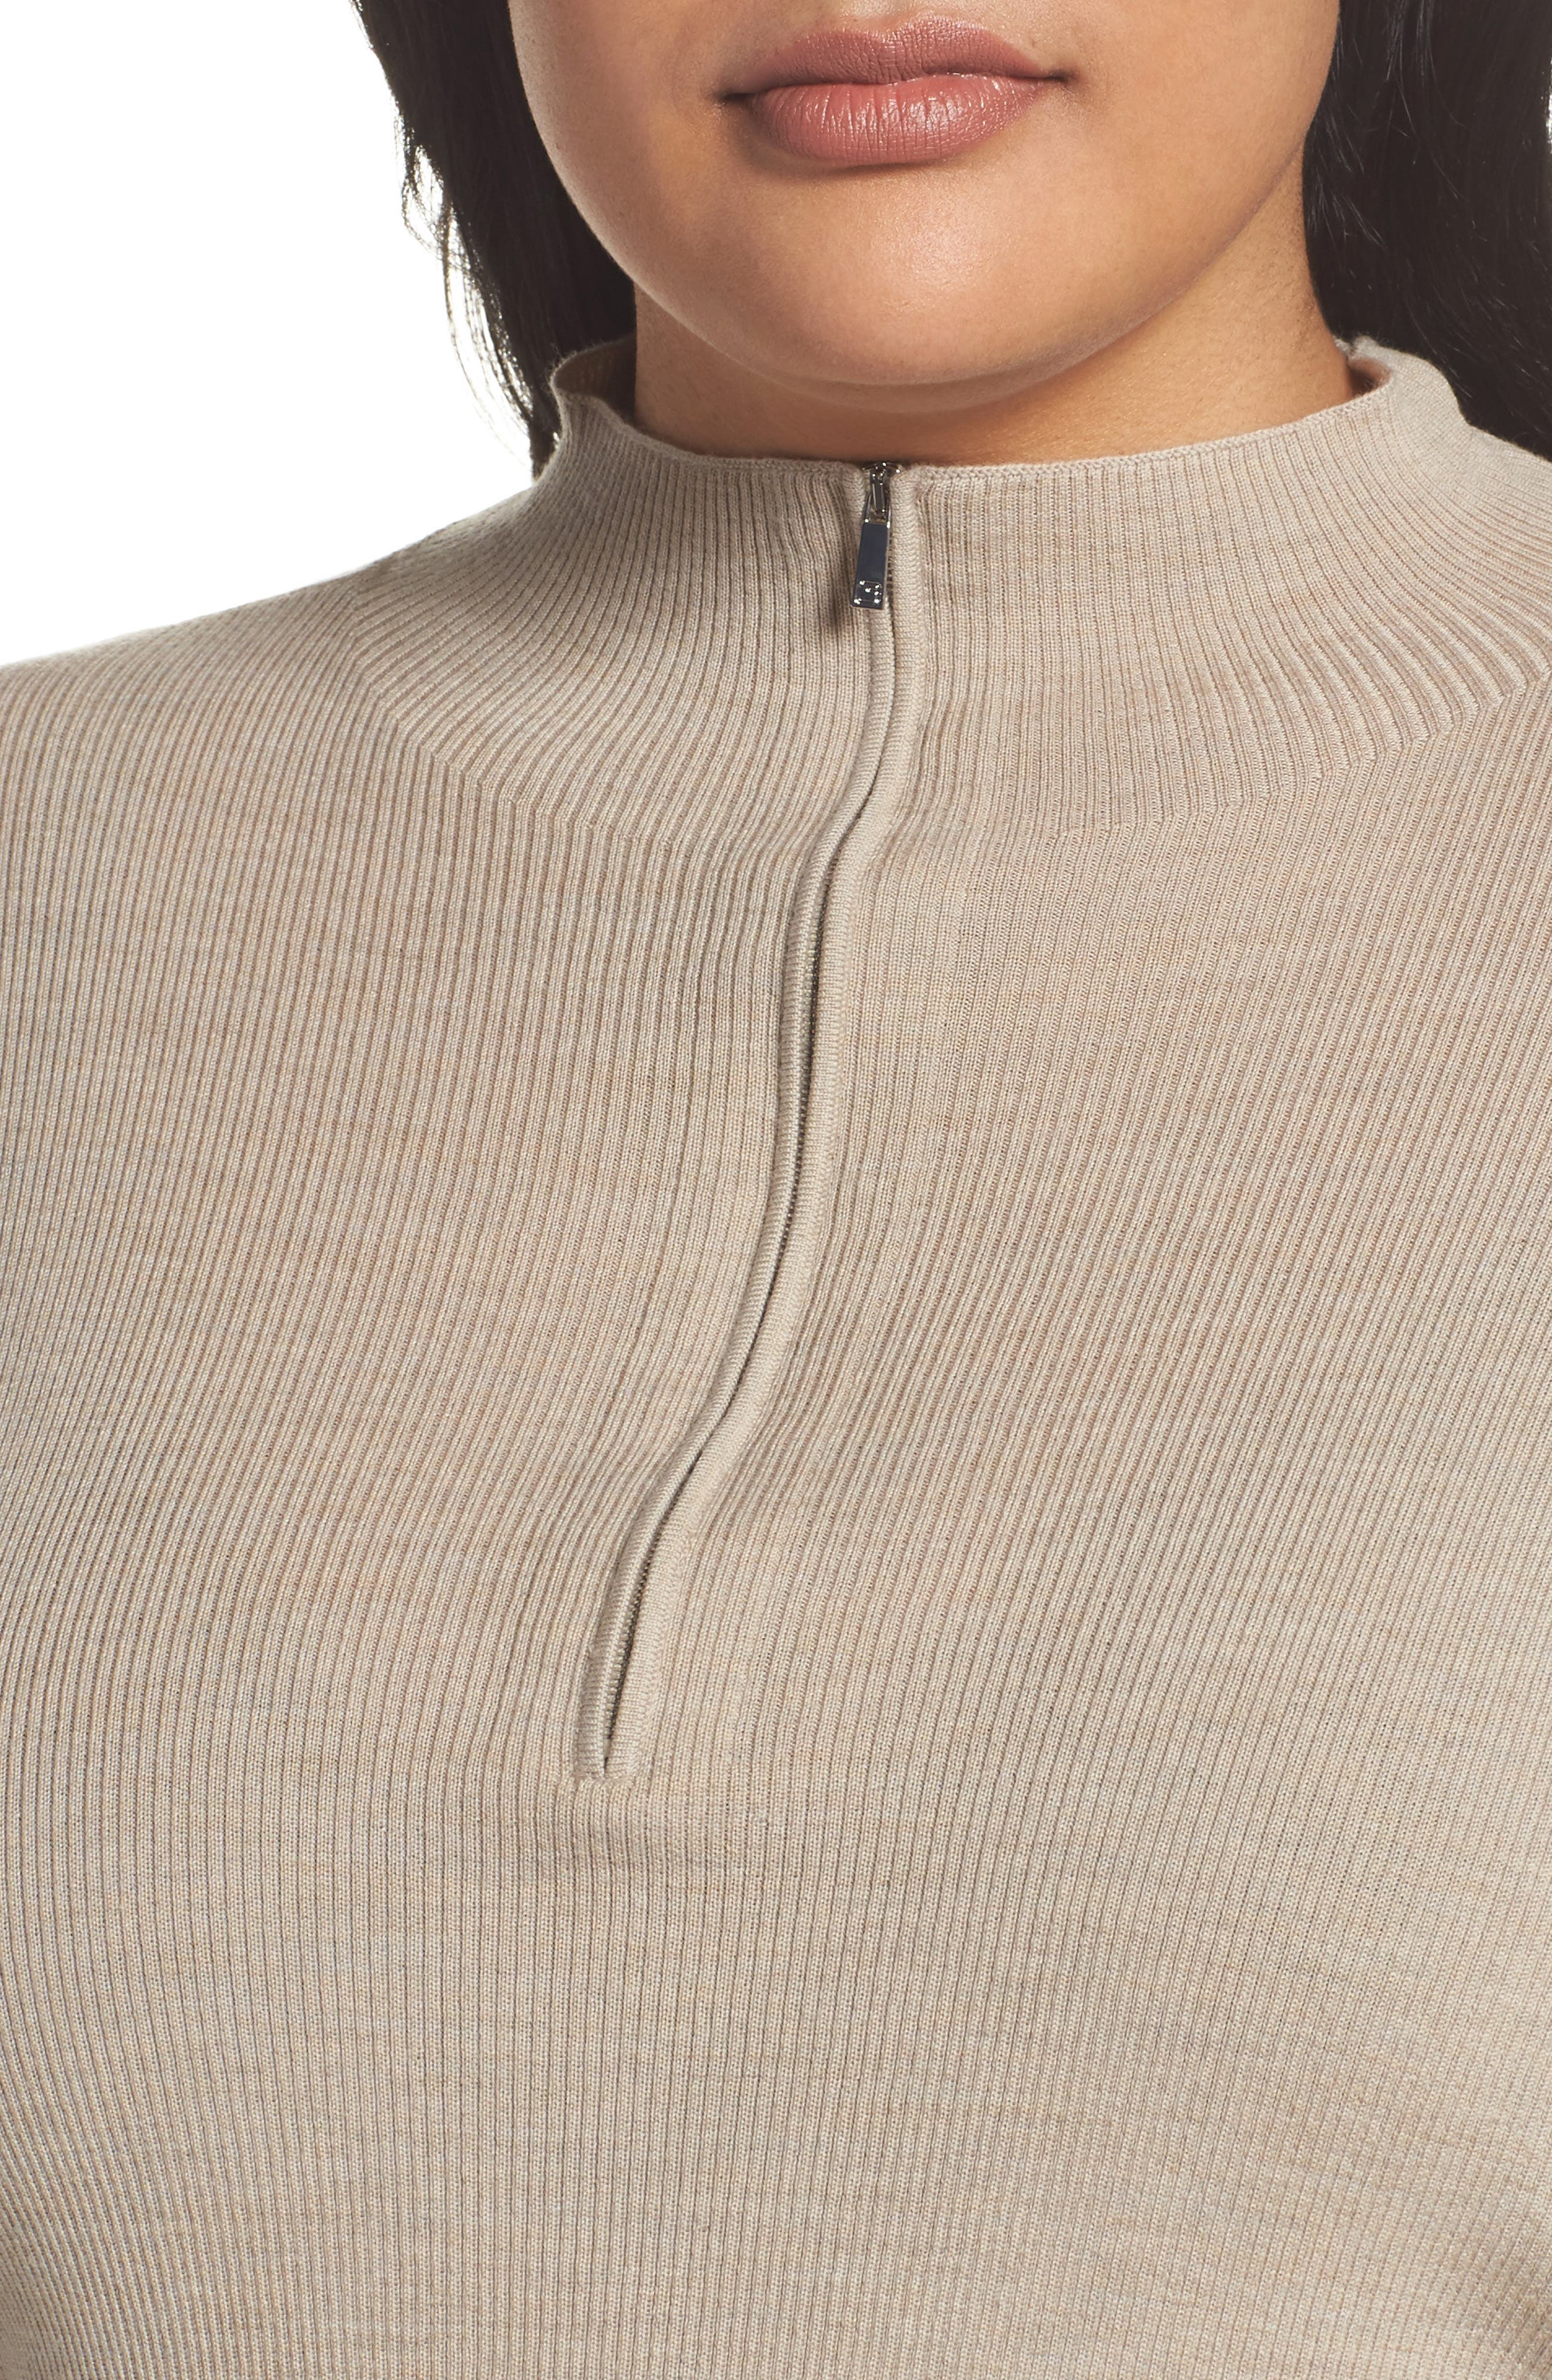 Skinny Ribbed Pullover,                             Alternate thumbnail 4, color,